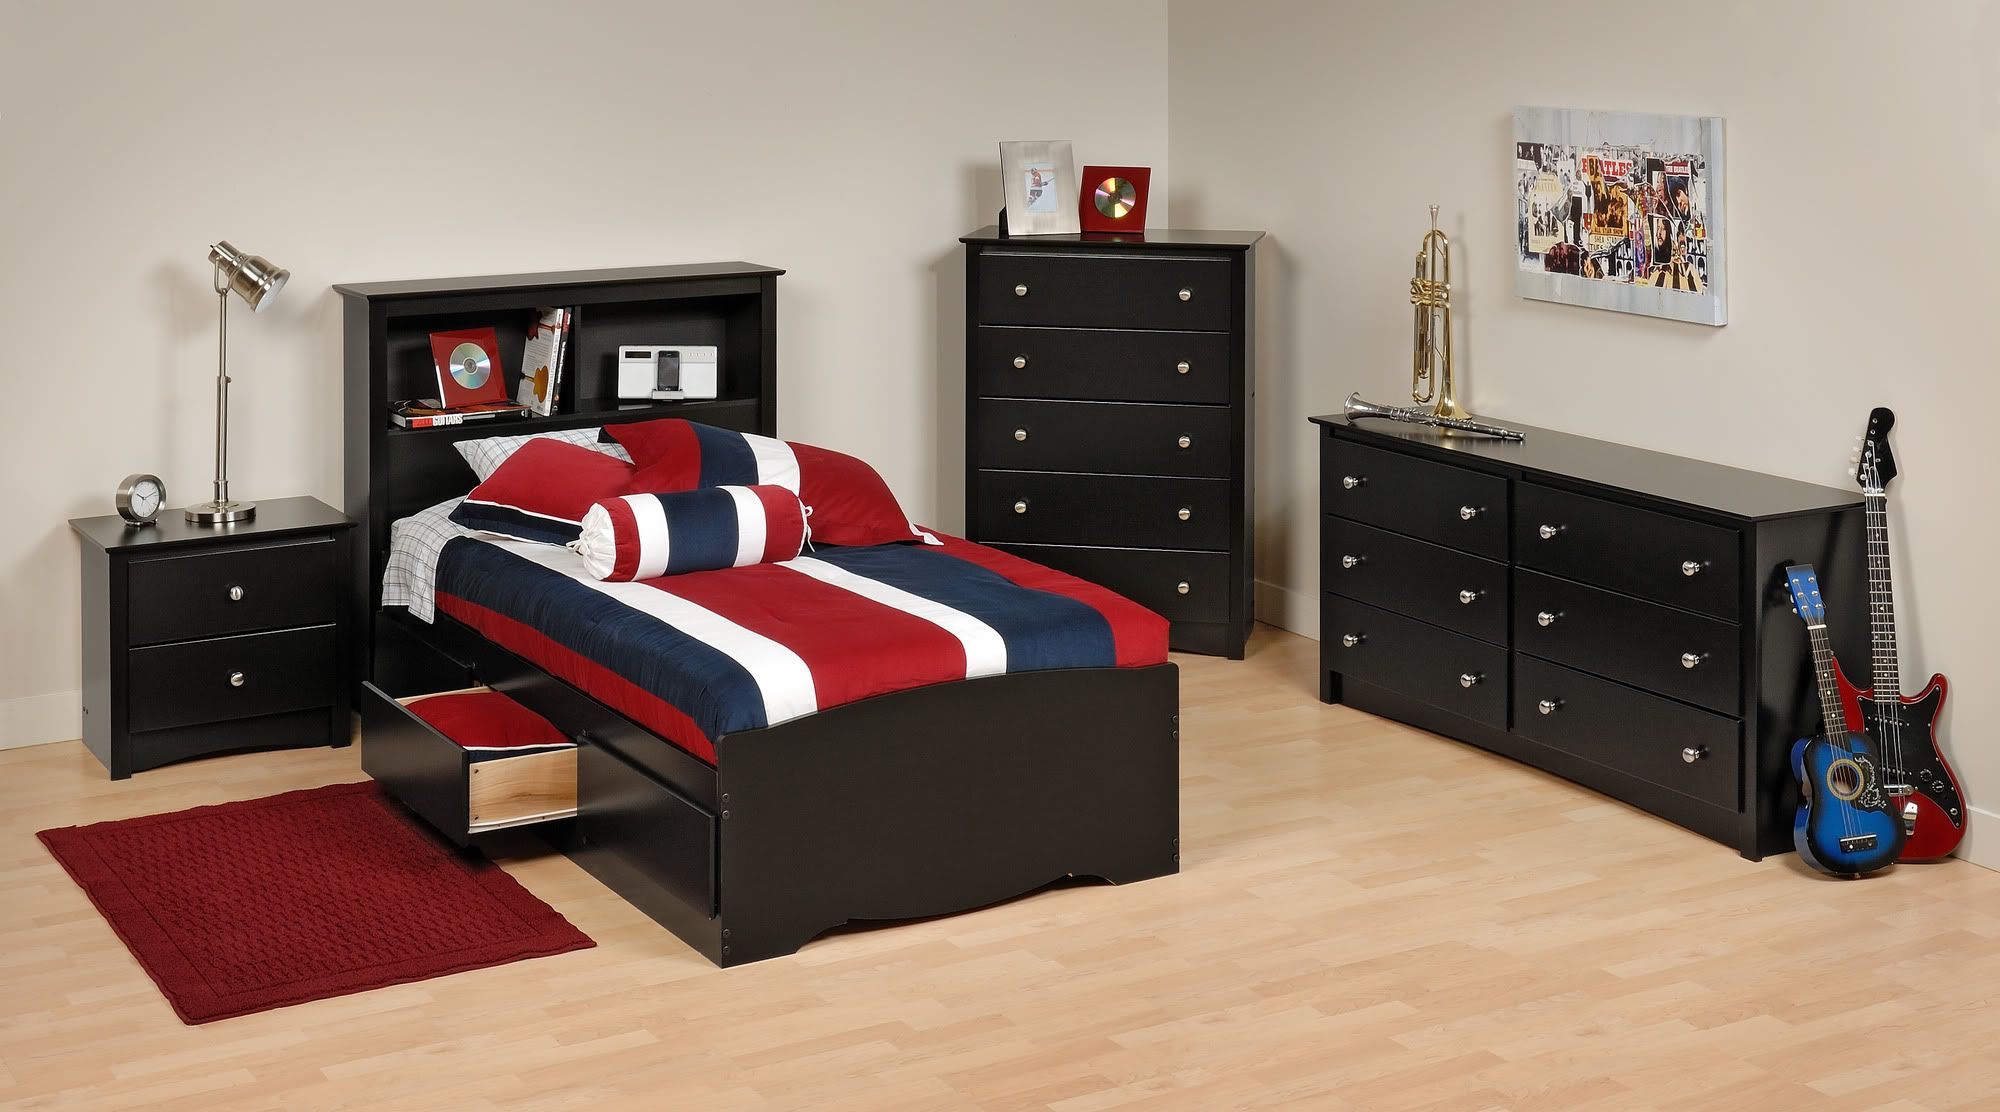 Alluring Boys Bedroom Set With Twin Size Bookcase Bed And Simple Enchanting Twin Bedroom Sets Inspiration Design